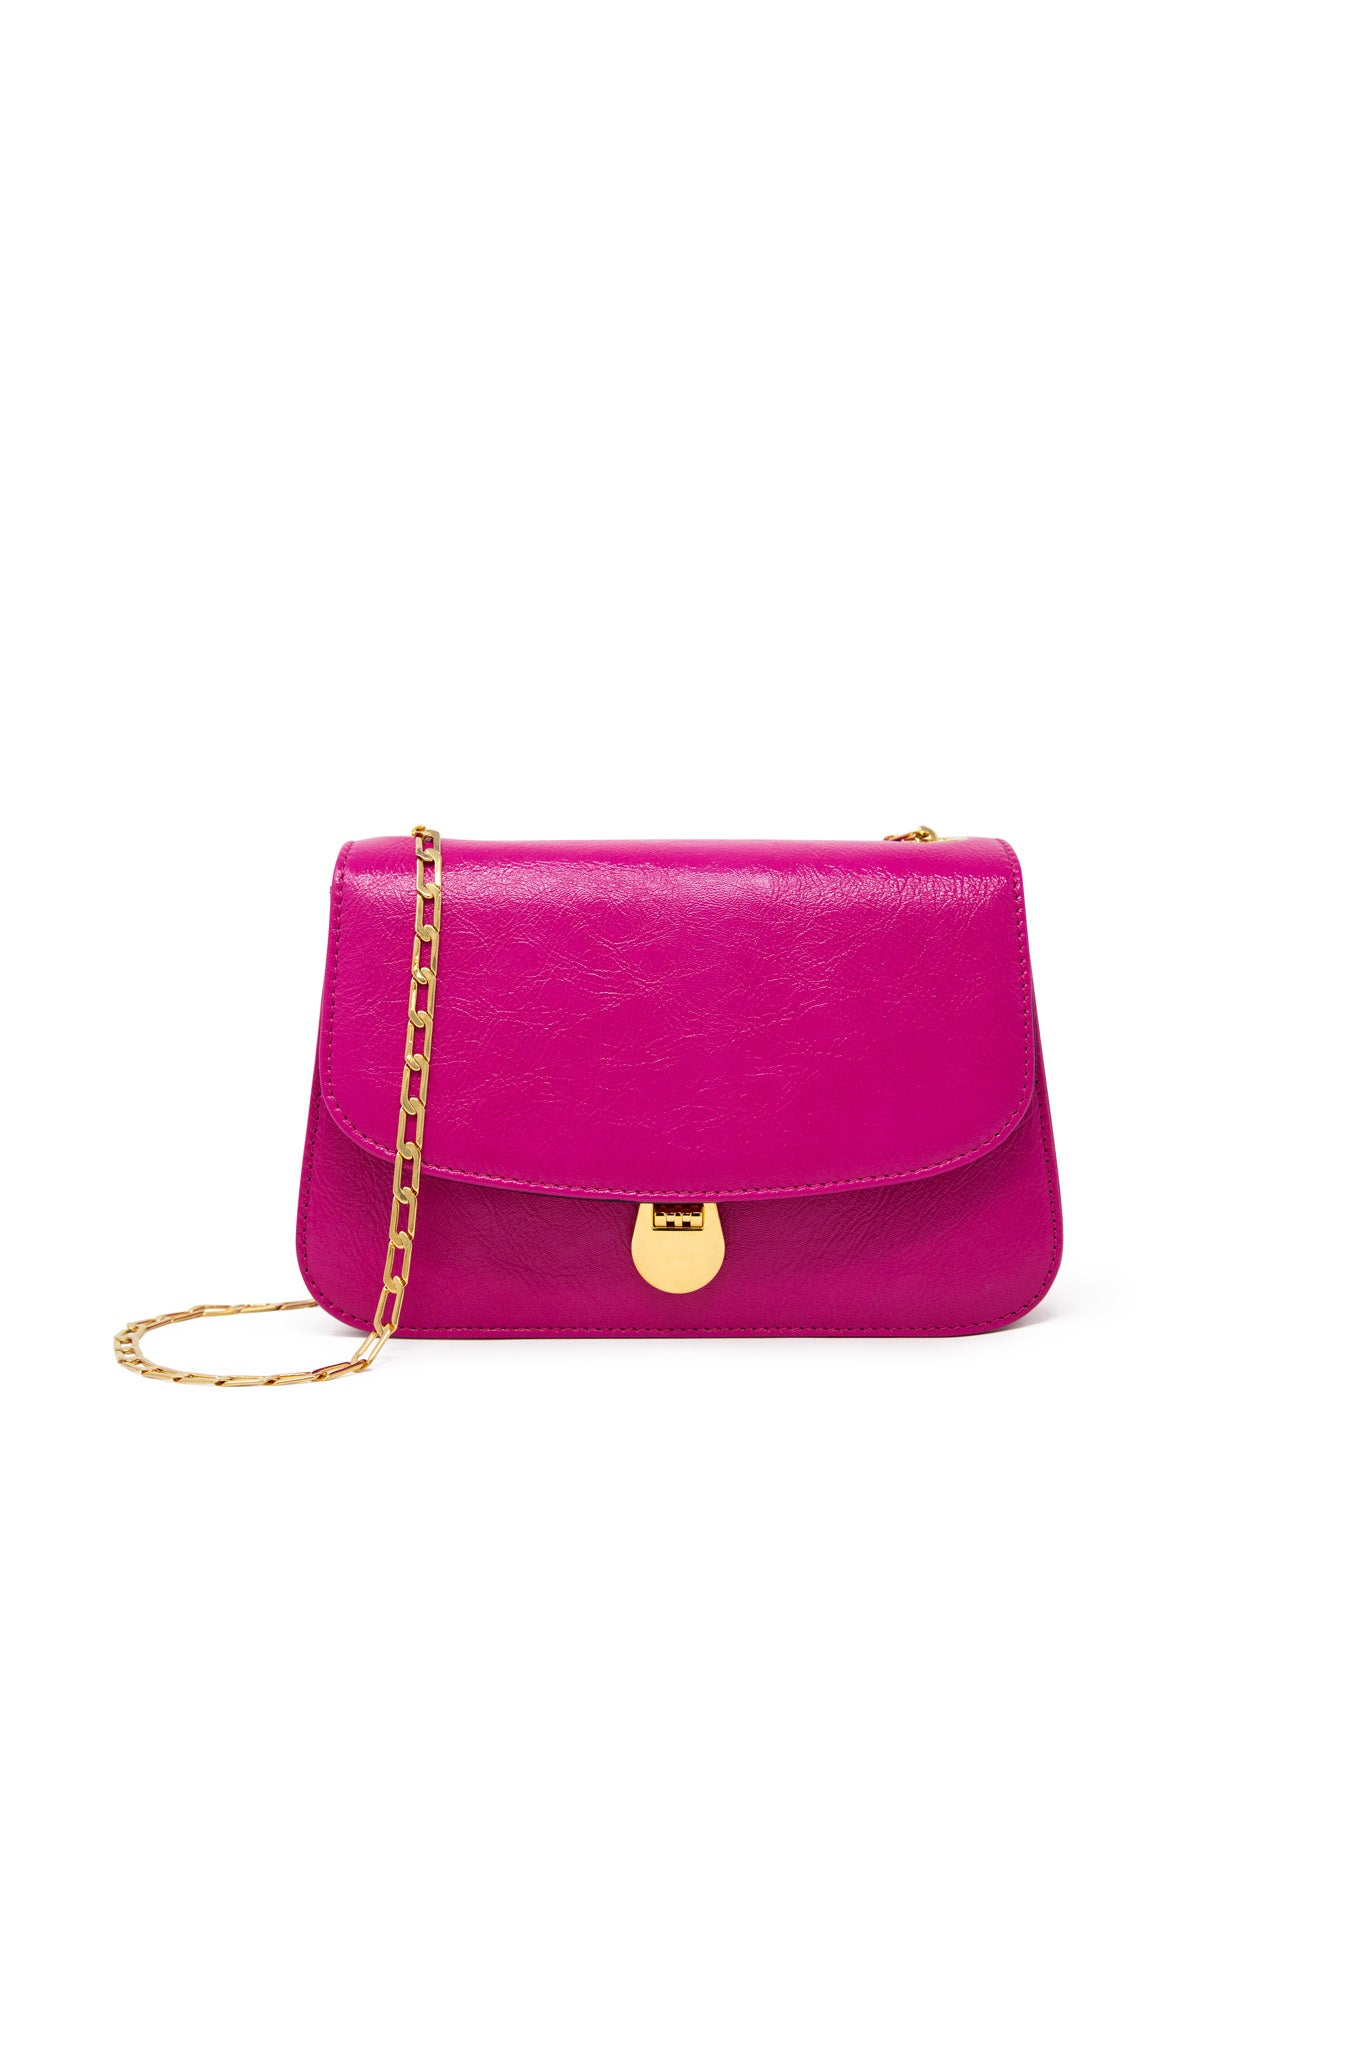 Sabi Shoulder Bag in Electric Pink Leather